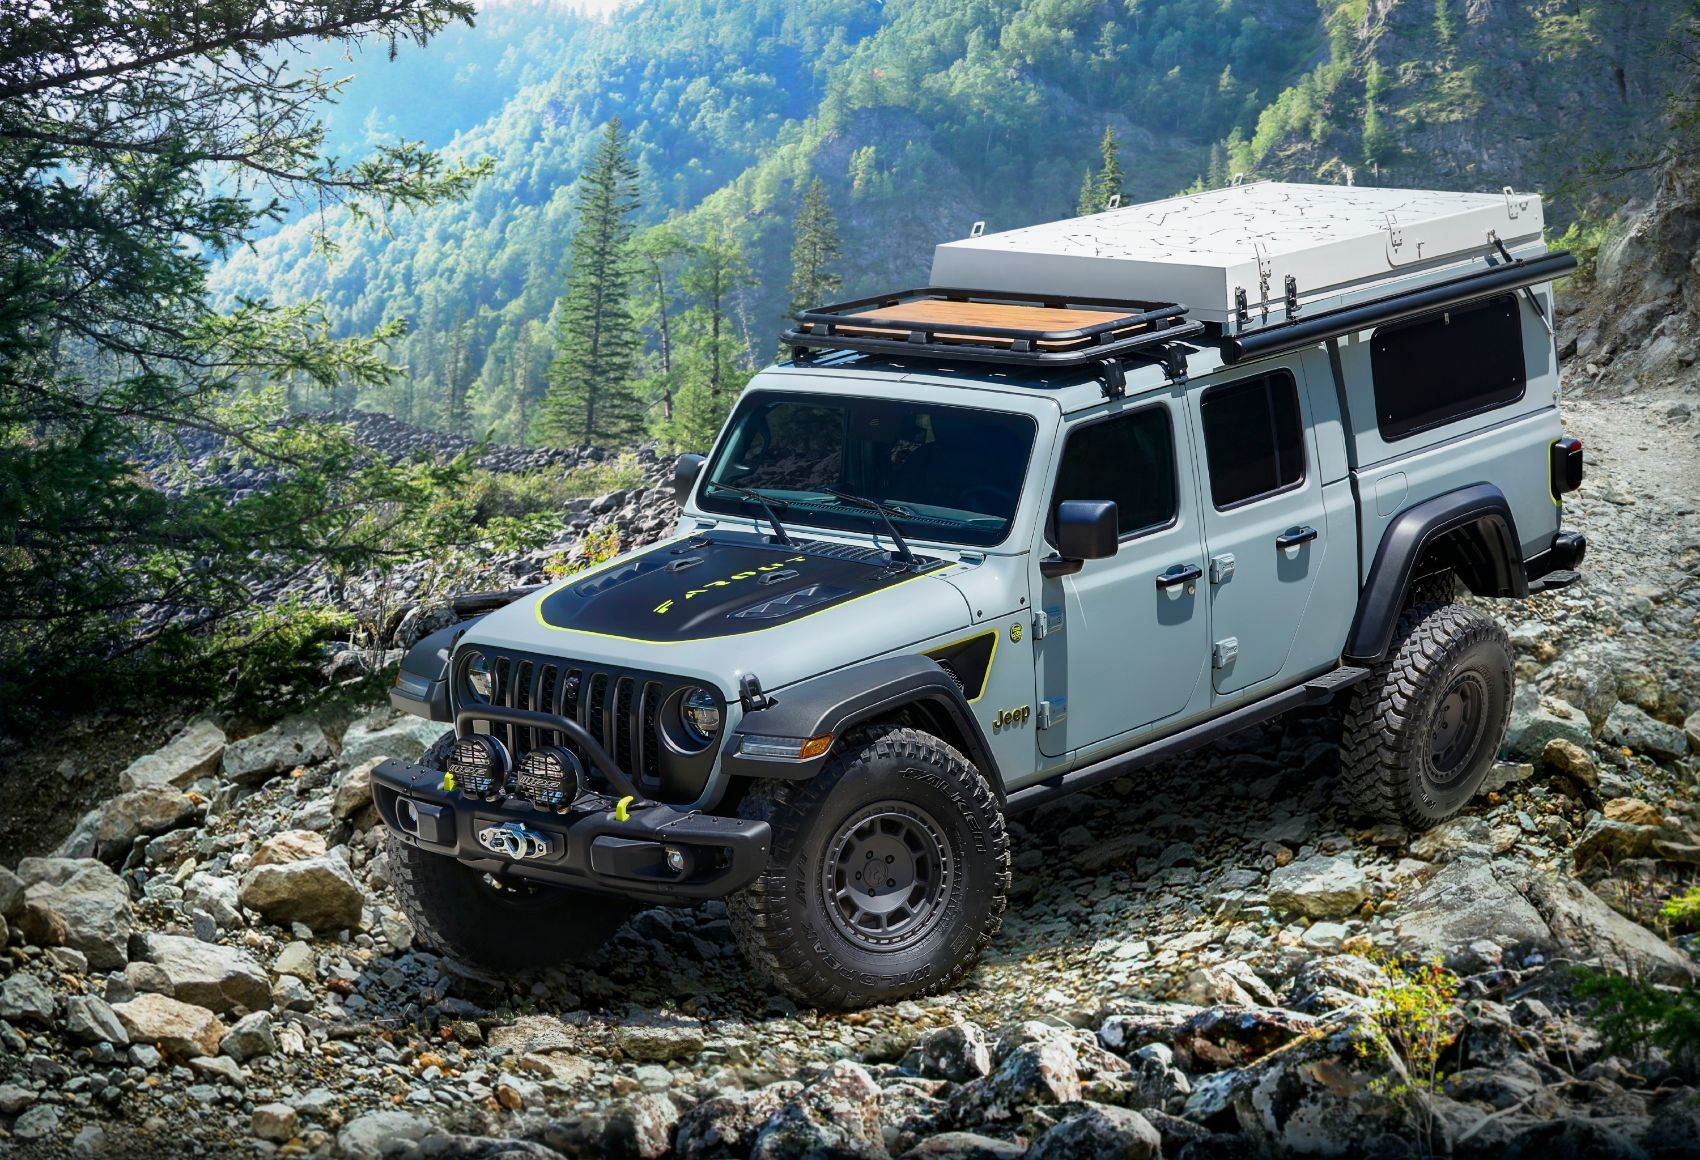 The New Jeep Gladiator Farout Concept is One Sweet Machine!